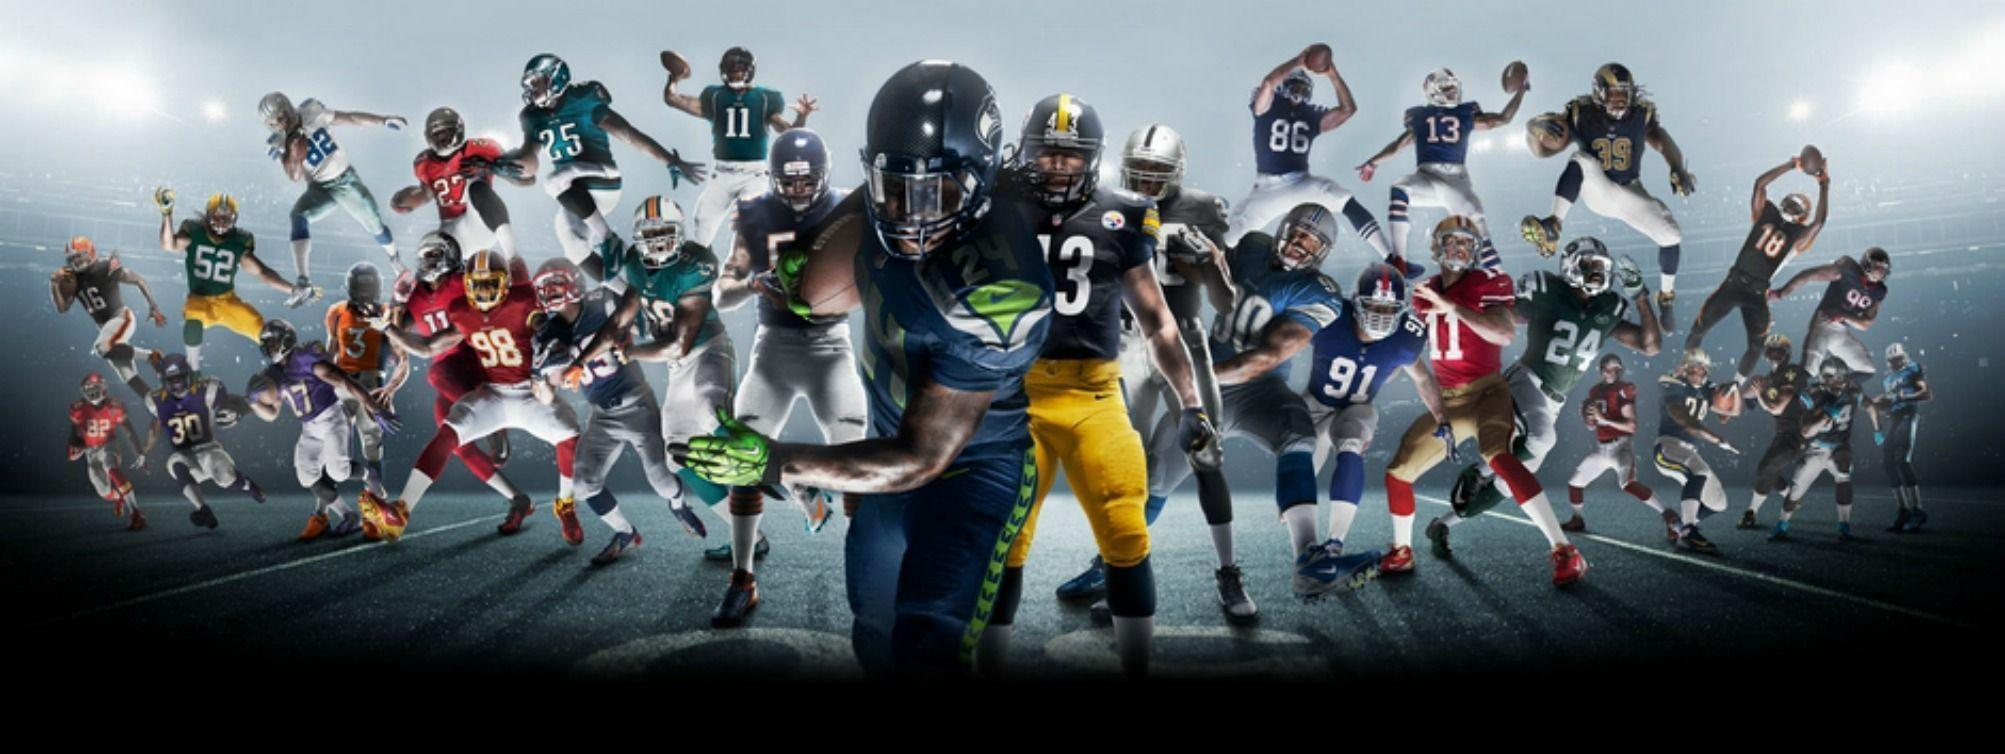 Nfl Wallpapers Hd Wallpapers Cool Hd Nfl Football Backgrounds Sportis